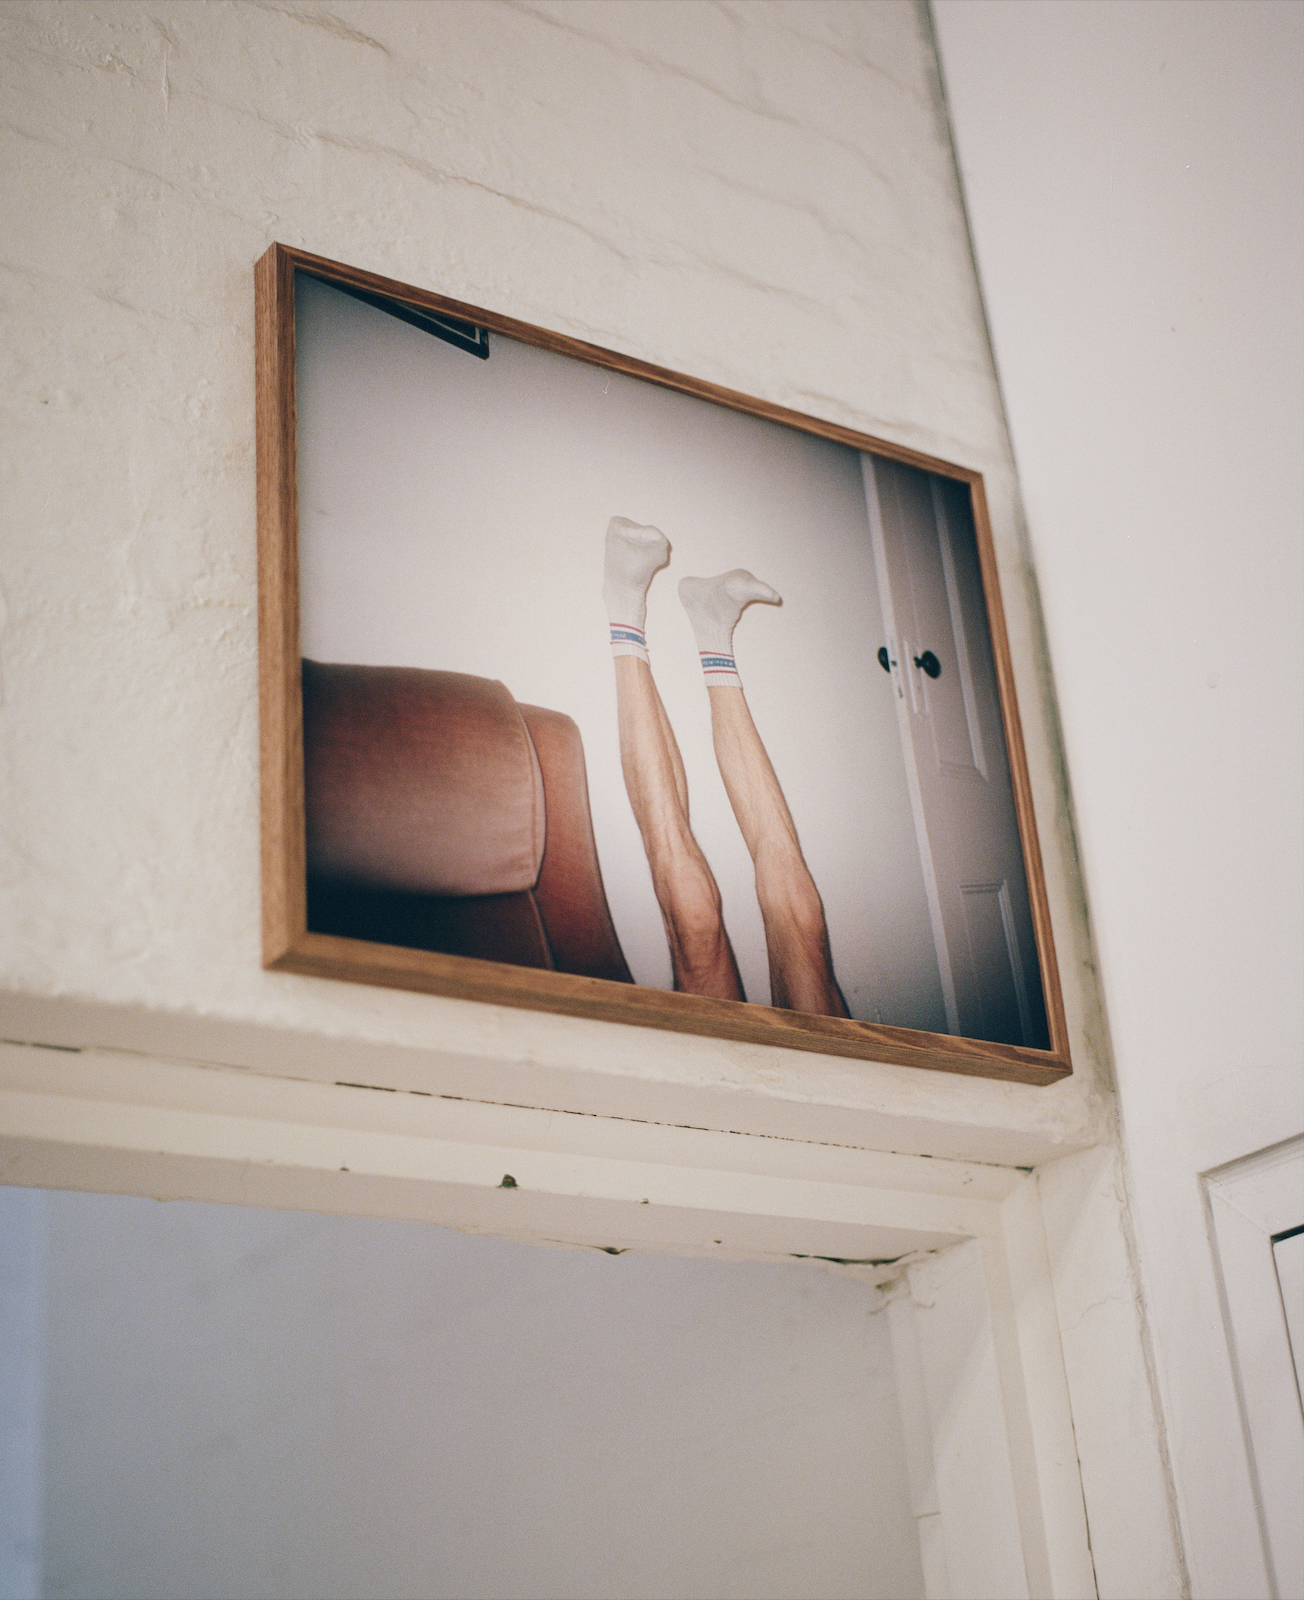 Just as you came    Installed throughout the photography stairwell at the Victorian College of the Arts.  Documentation of installation.   For You,      archival matte inkjet print mounted and framed within stained Tasmanian Oak, 44.5 cm x 55 cm, 2018.  Available to purchase at: https://timhardy.bigcartel.com.